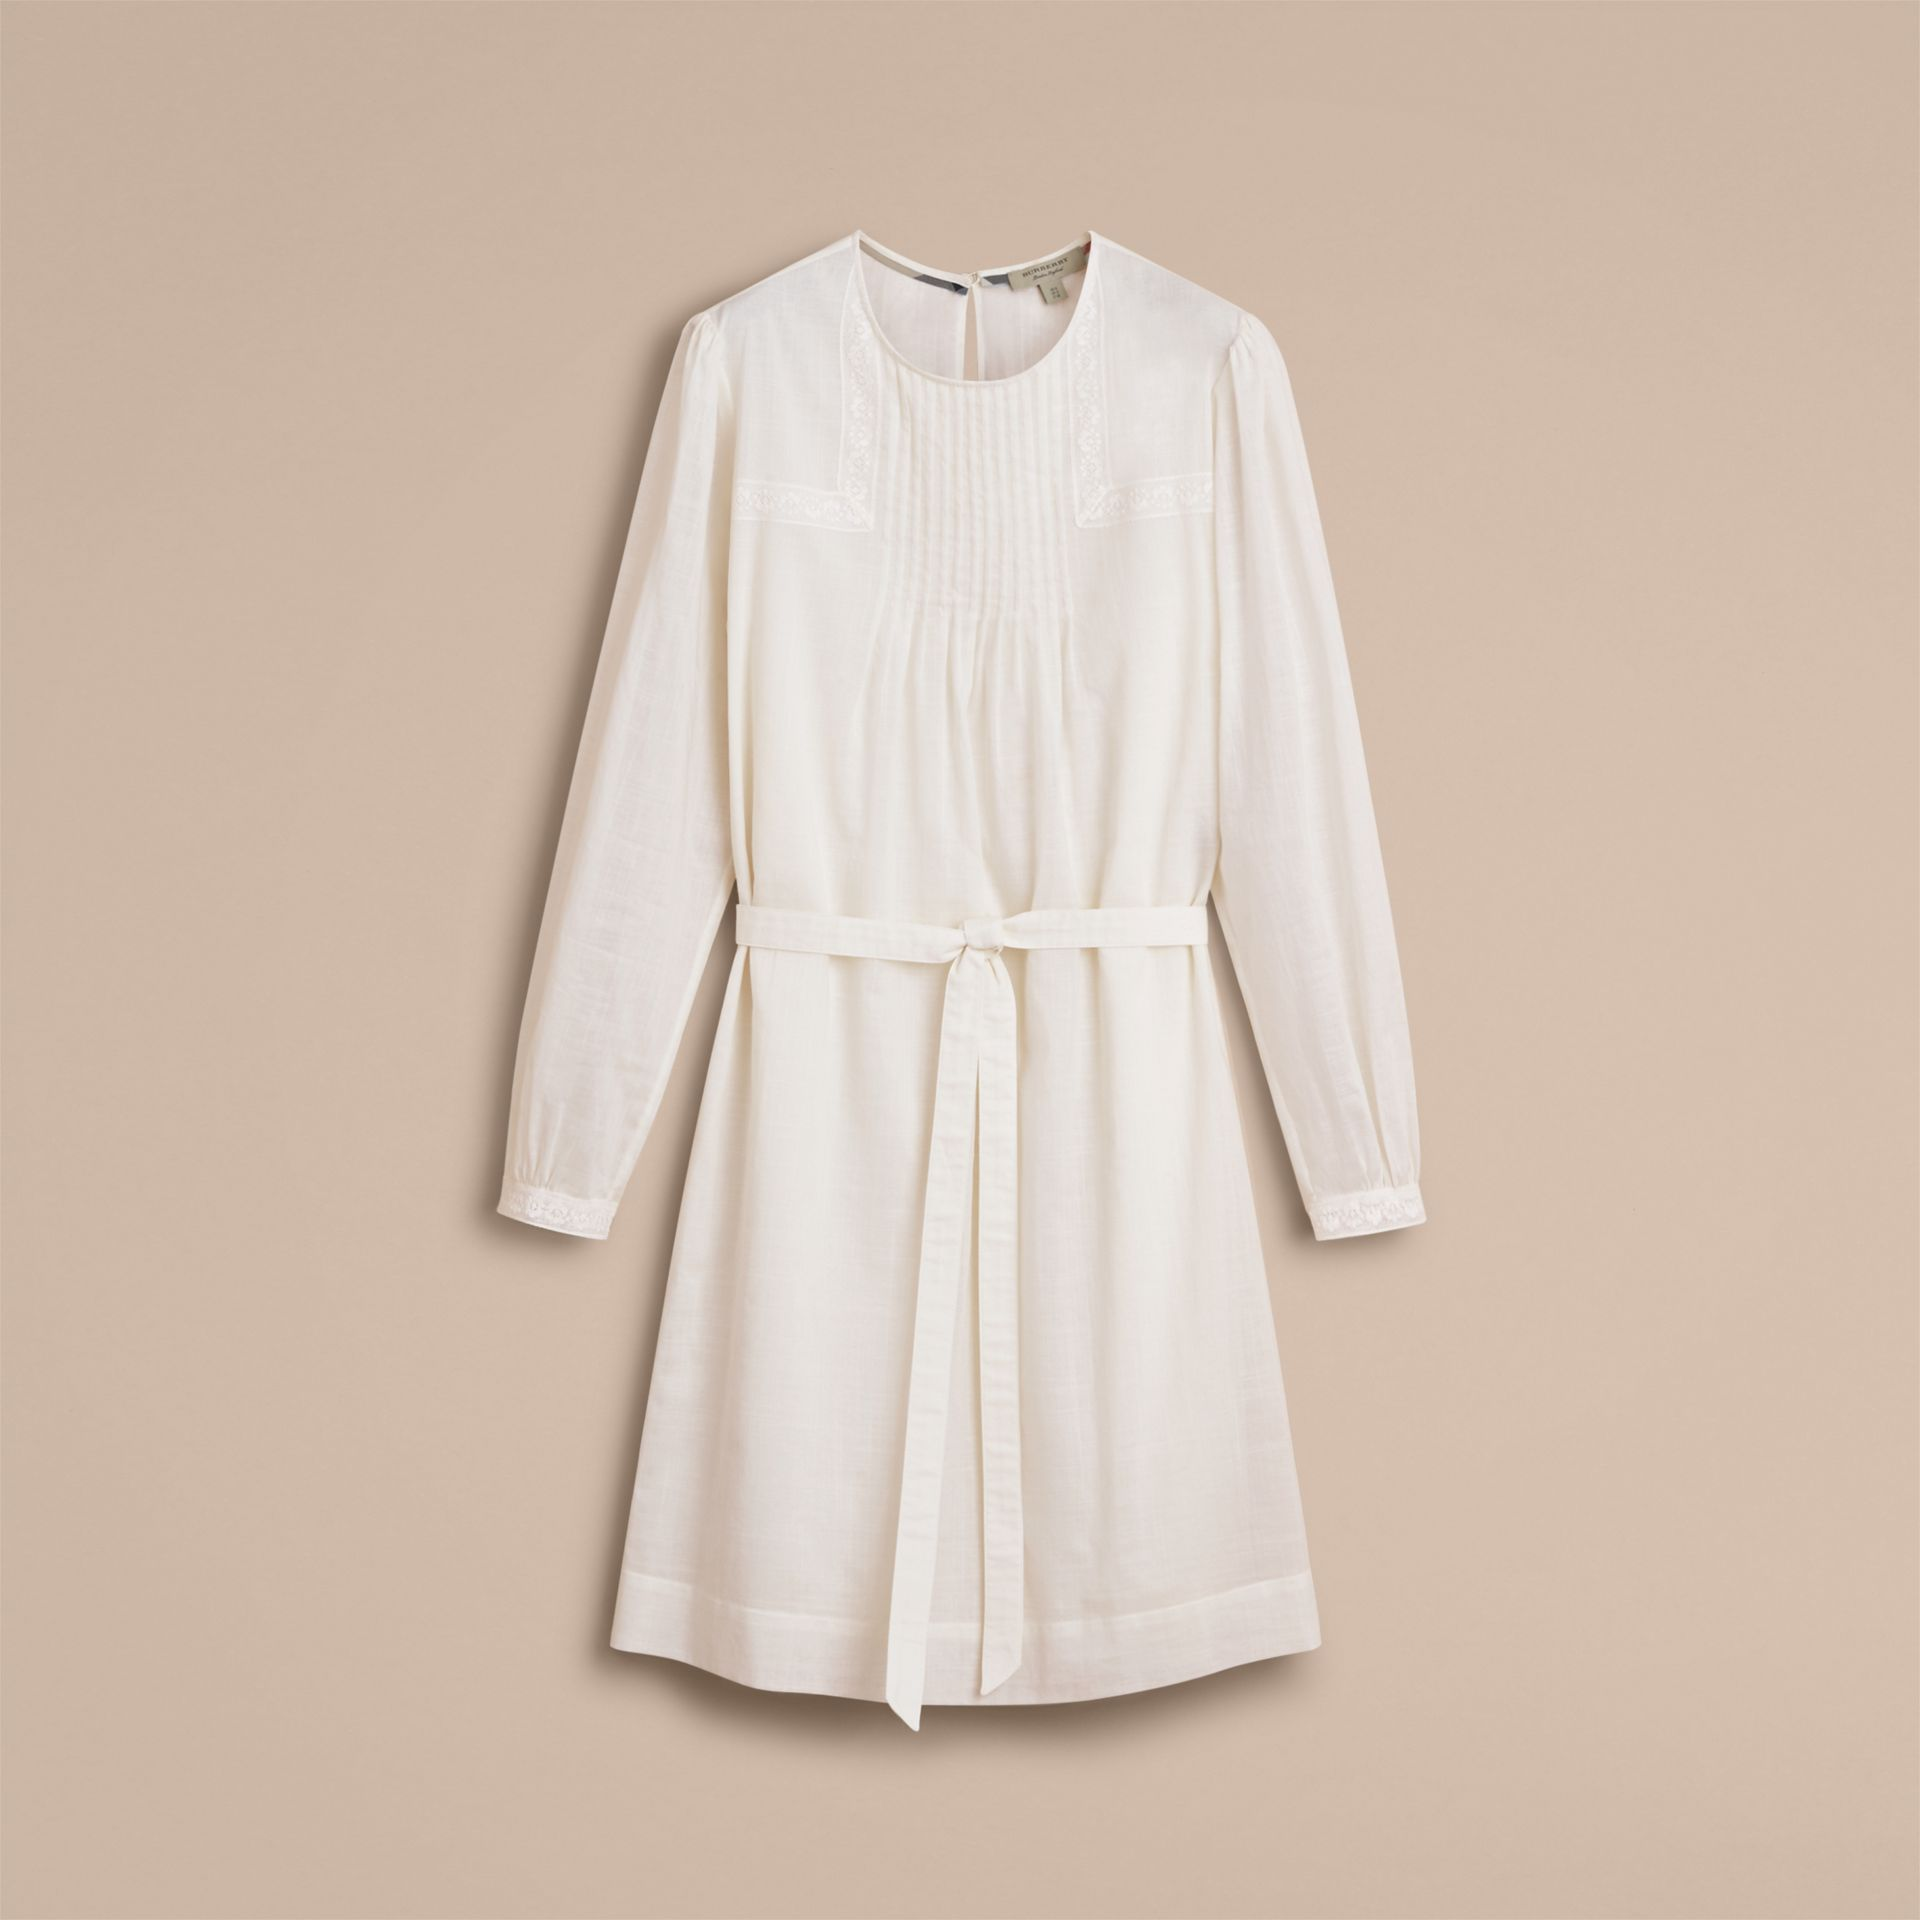 Pintuck and Lace Detail Cotton Dress in Natural White - Women | Burberry - gallery image 4